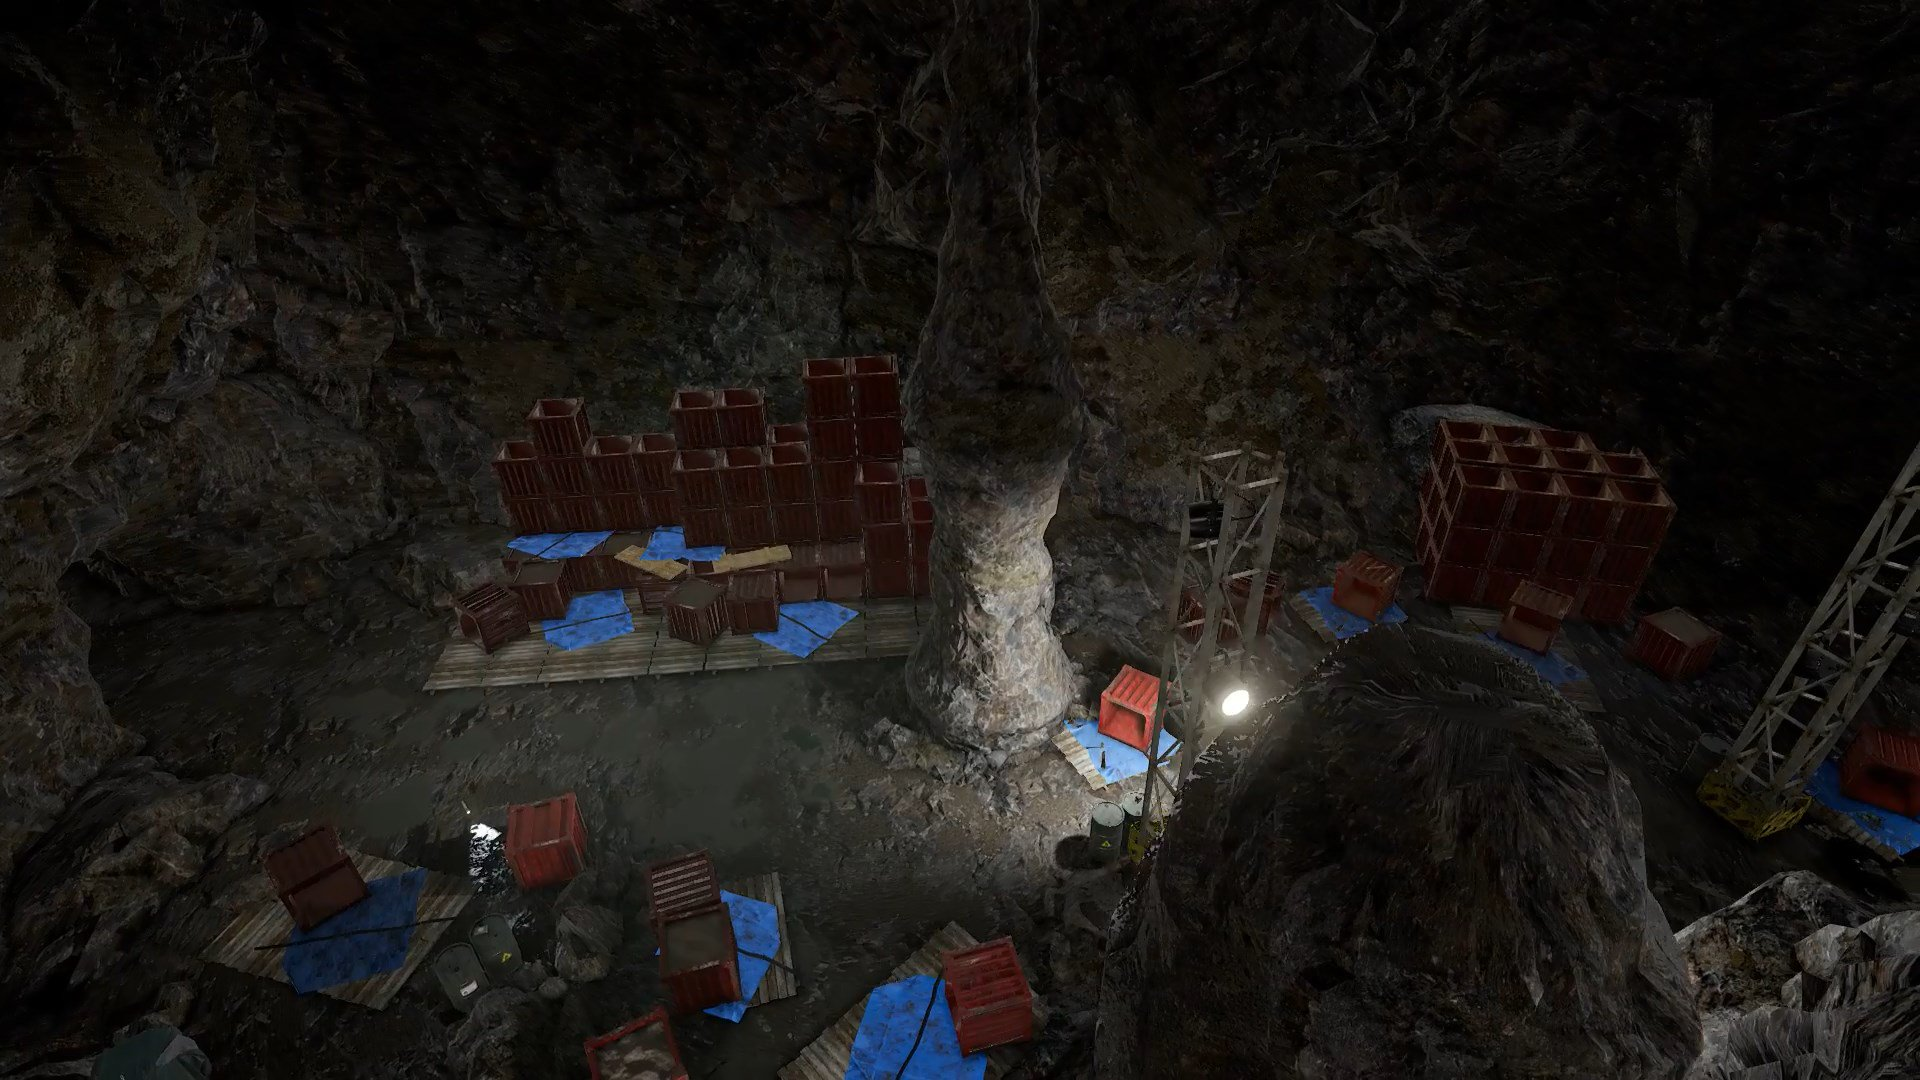 Vg247 On Twitter Pubg Players Stumble Upon Hidden Loot Cave In Vikendi Https T Co P4ajixtkzk